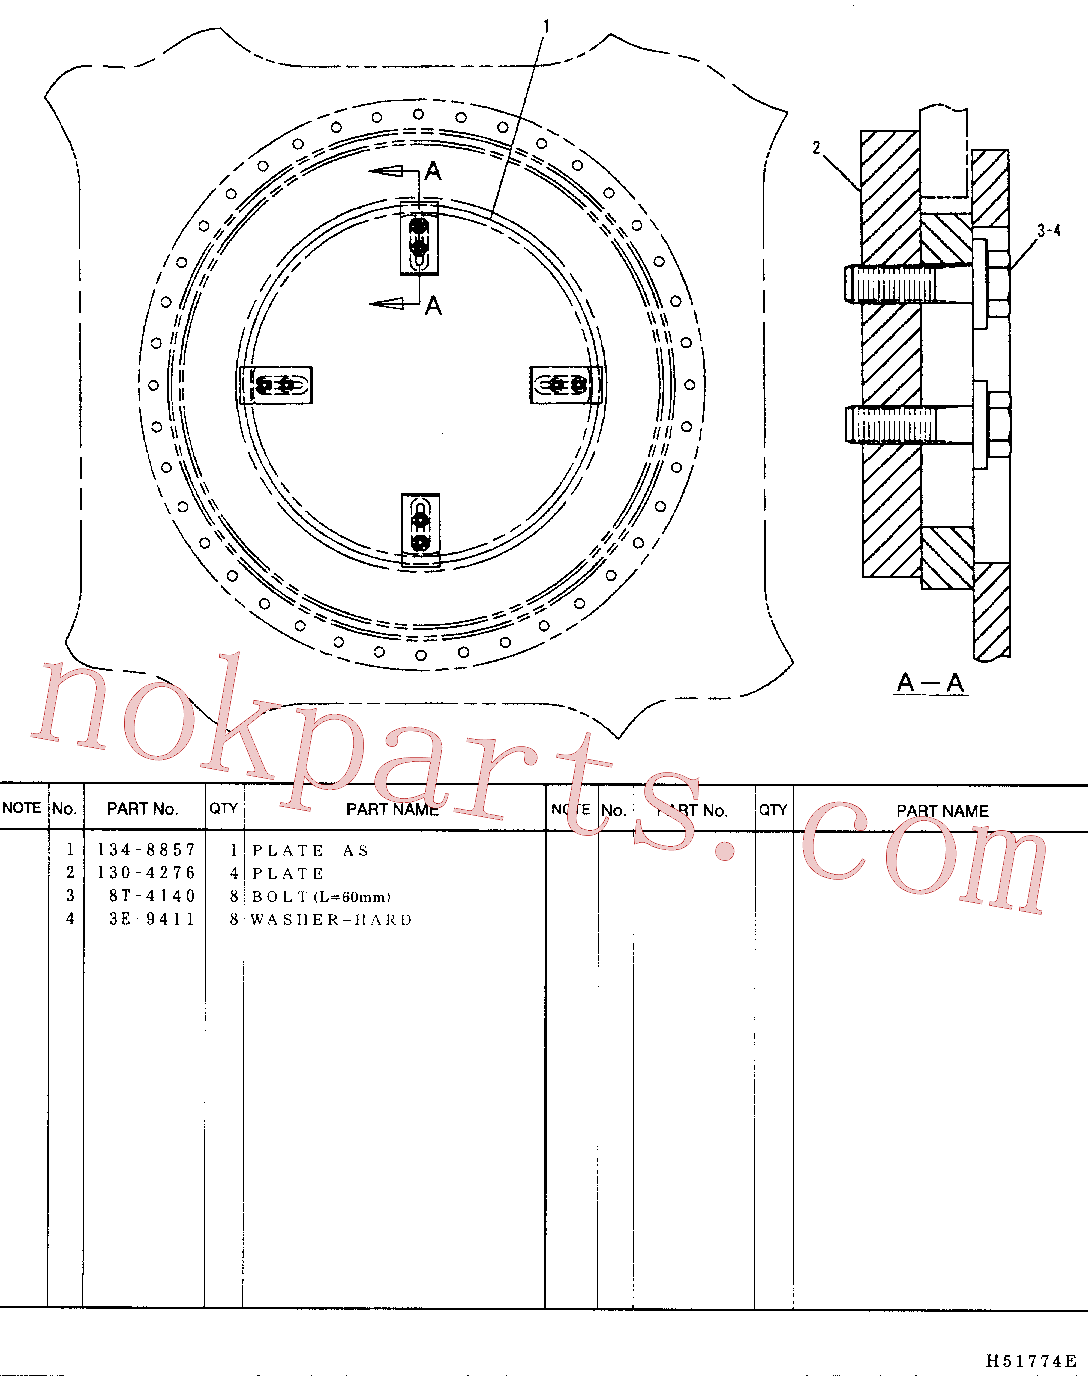 CAT 447-1707 for 390F Excavator(EXC) frame and body 134-8856 Assembly